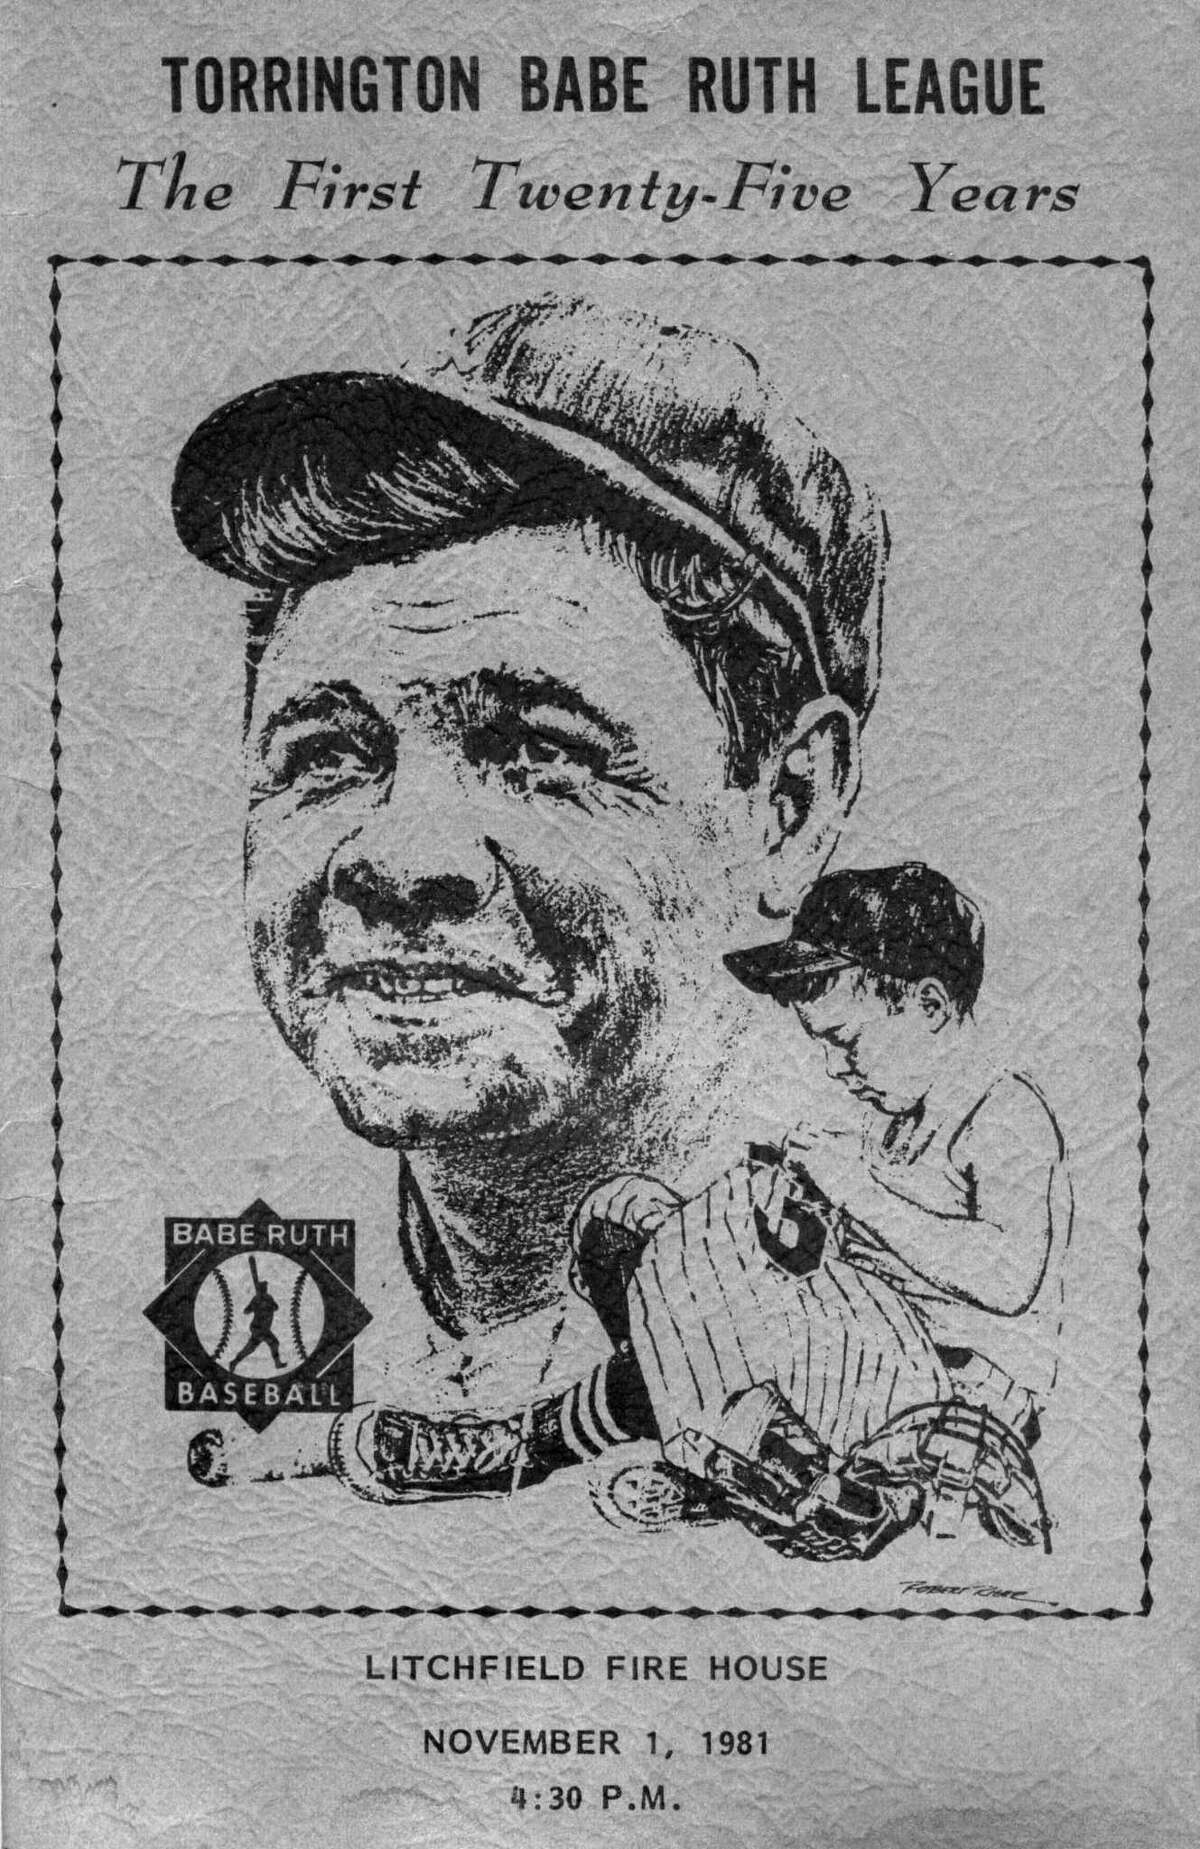 A program from the Babe Ruth League in Torrington, published in 1981.